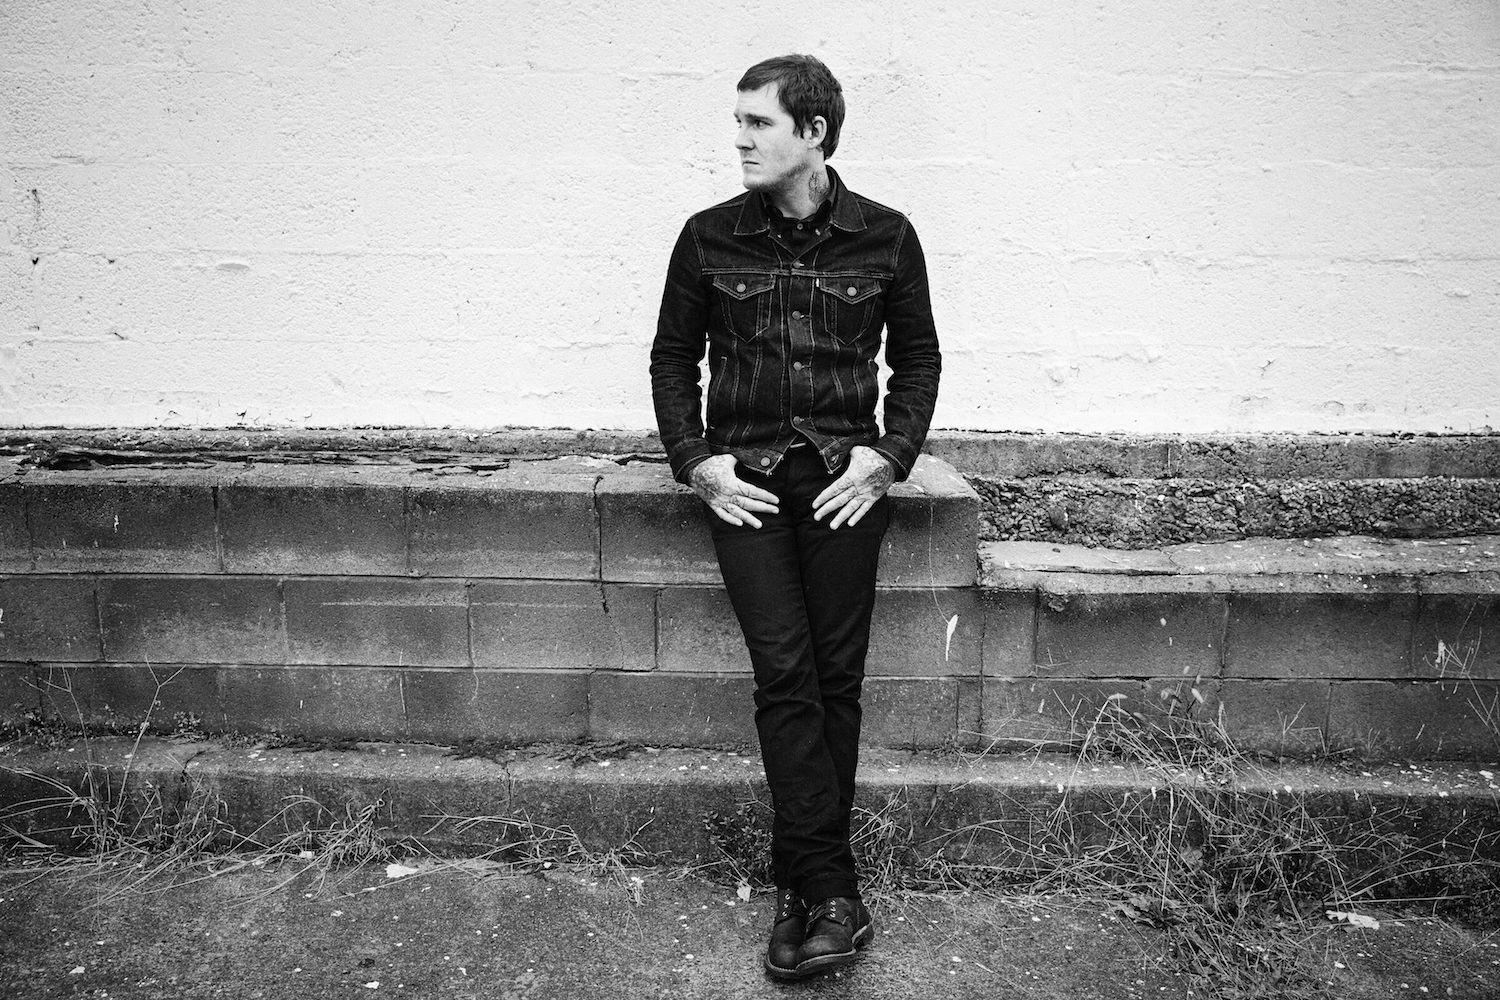 A year on from The Gaslight Anthem's last show, Brian Fallon reflects at Reading 2016